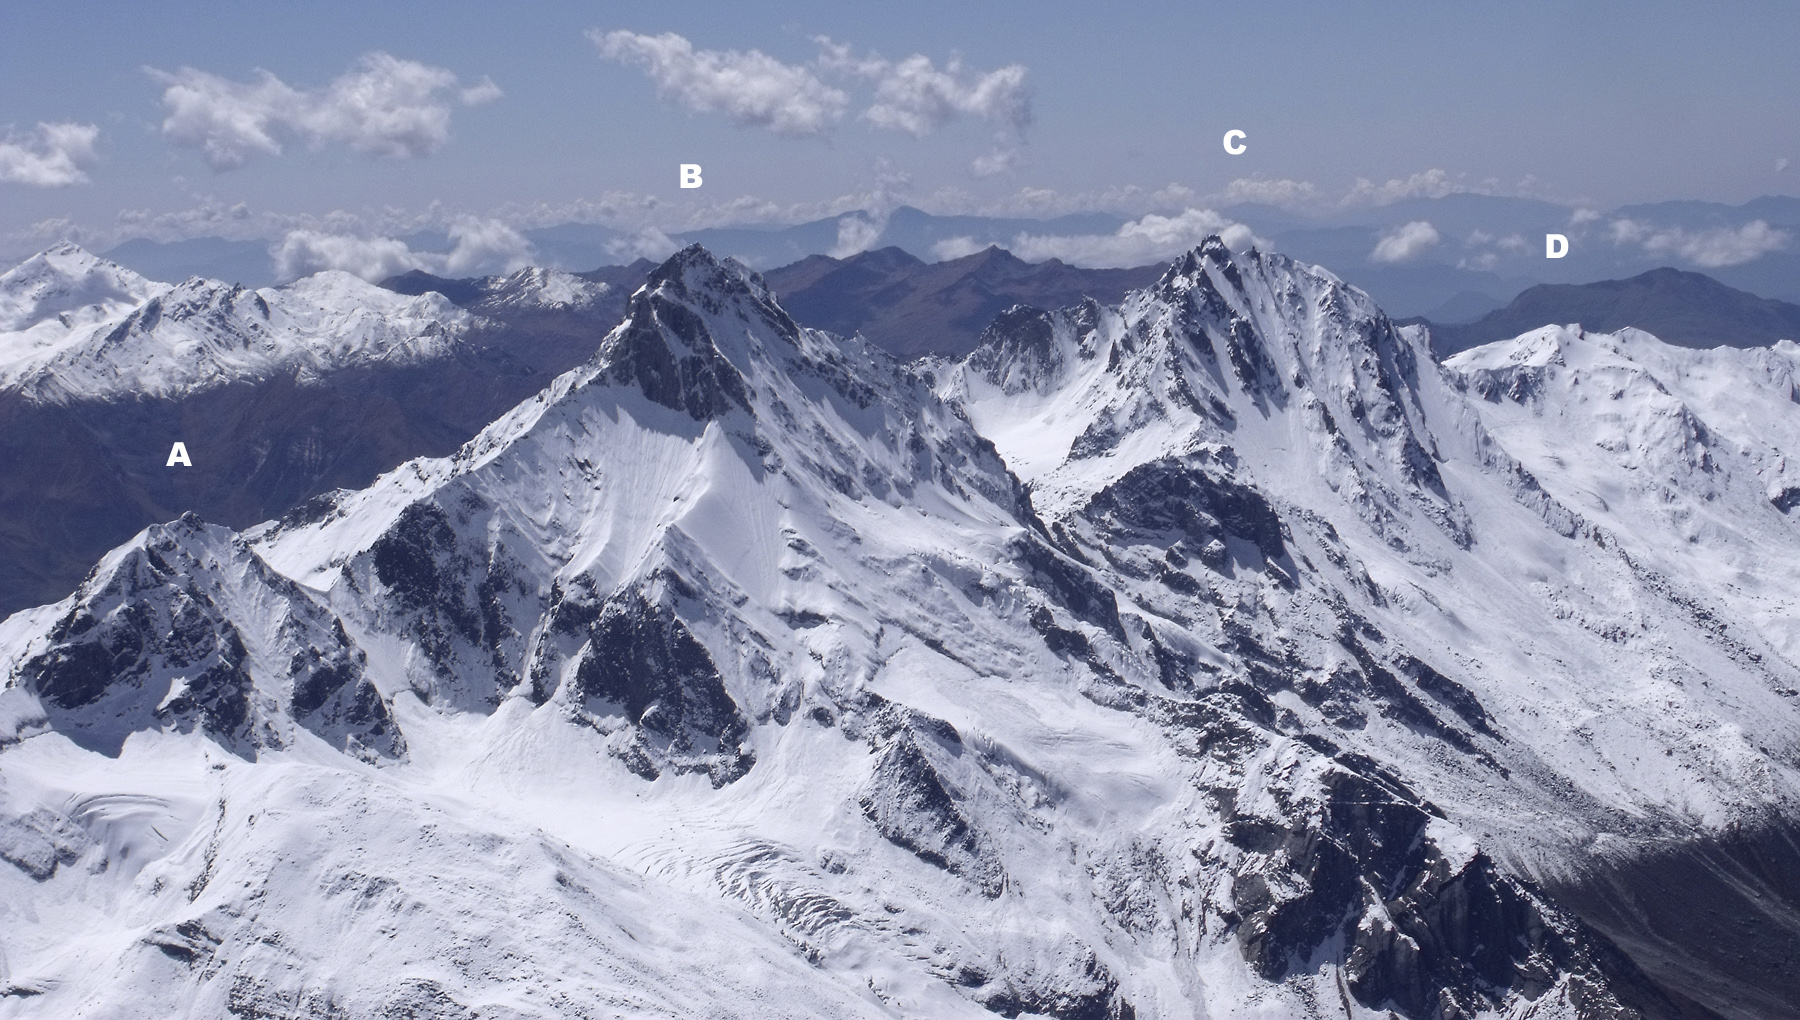 Looking southwest across the upper Obra Valley. (A) Andurko, (B) Ranglana , (C) Dhodhu (5,418m), and (D) Dhodhu Kha Guncha (5,135m). The ascent of Ranglana crossed the saddle between it and Dhodhu, then climbed the (hidden) south ridge. Jonathan Phillips